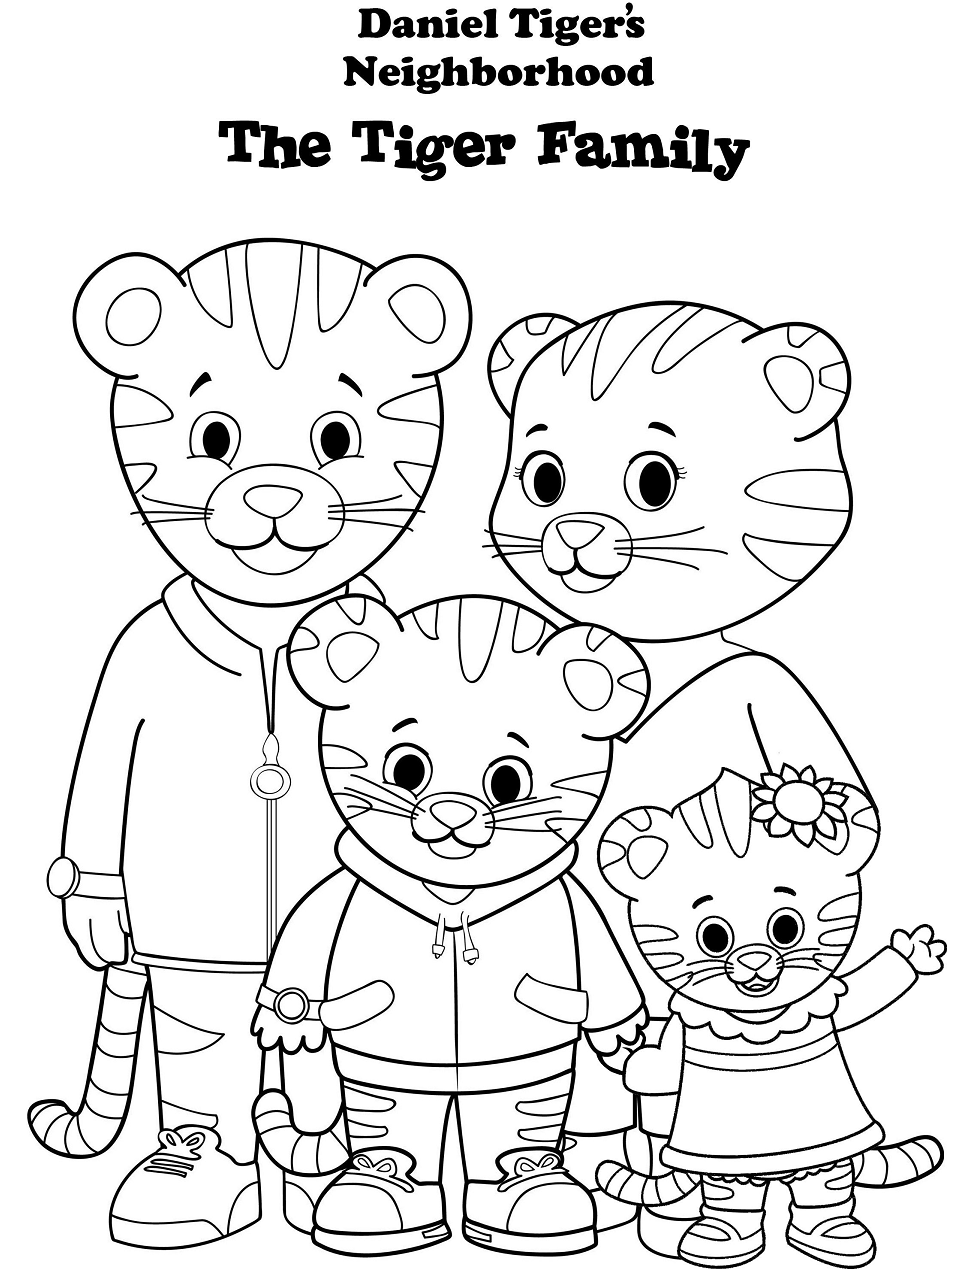 31 Daniel Tiger Coloring Pages Printable Photo Inspirations Slavyanka In 2020 Daniel Tiger S Neighborhood Daniel Tiger Family Coloring Pages